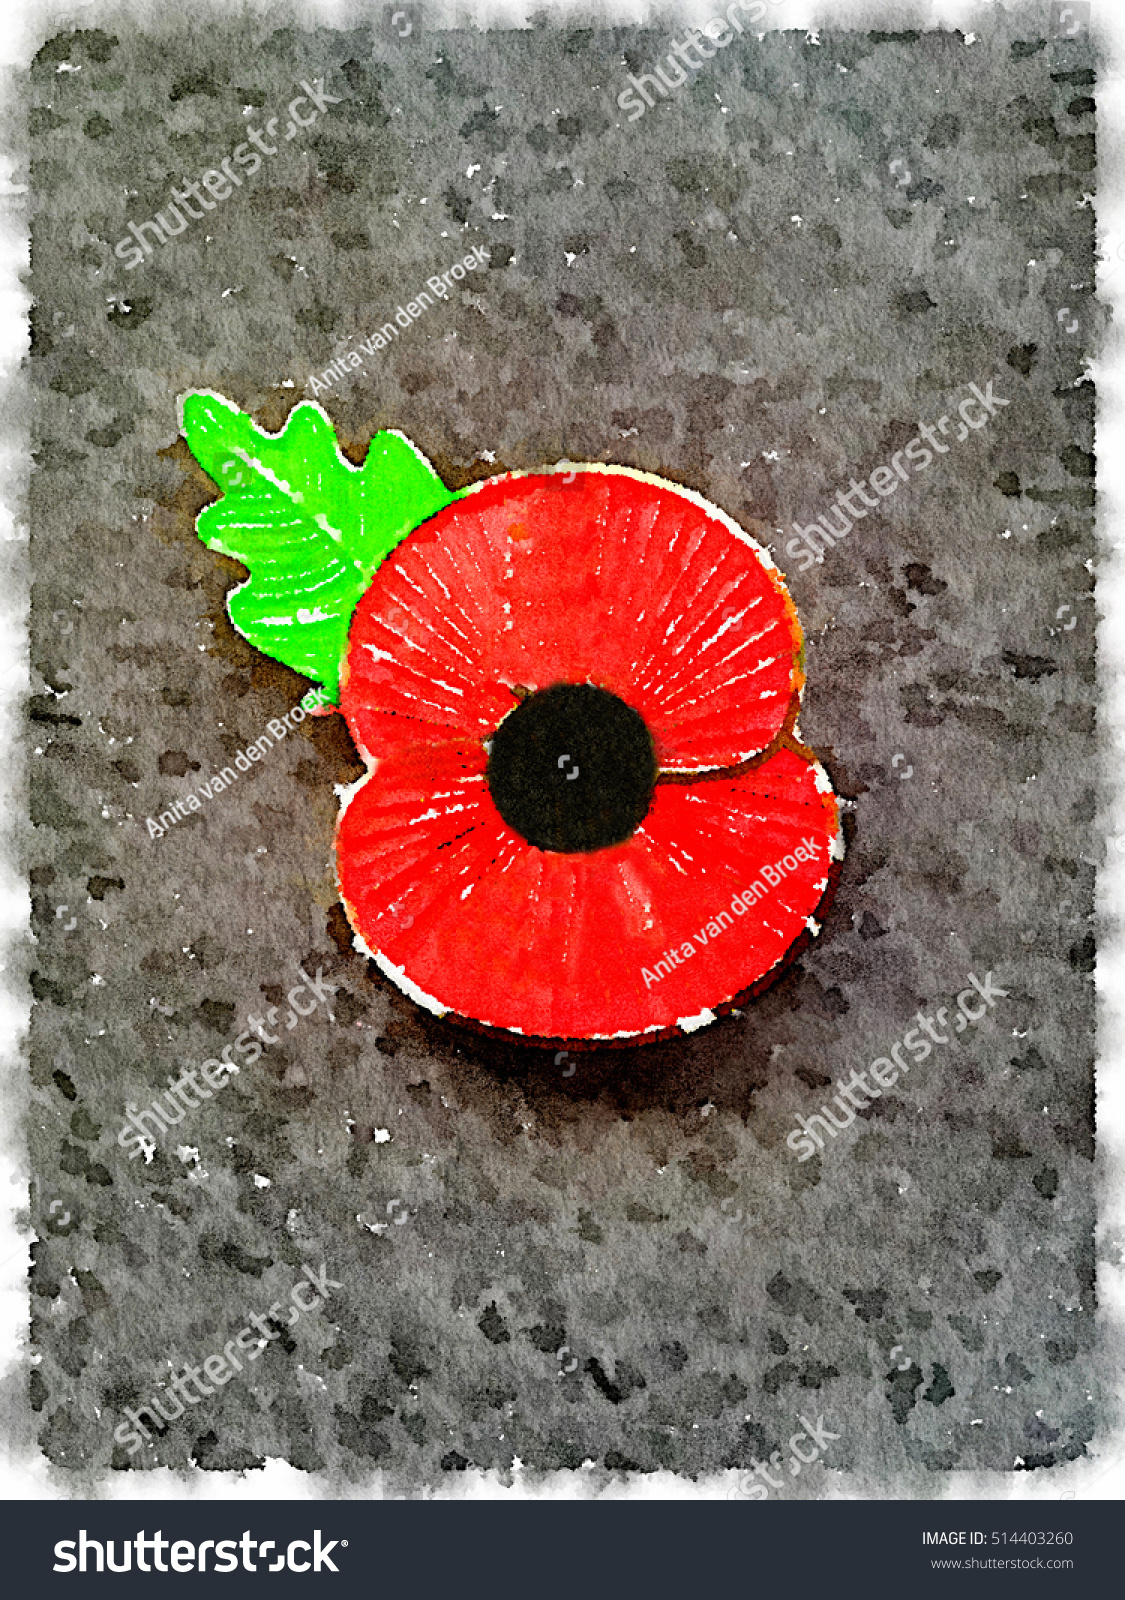 Royalty free stock illustration of digital watercolor painting poppy digital watercolor painting of a poppy badge lest we forget poppy worn for remembrance mightylinksfo